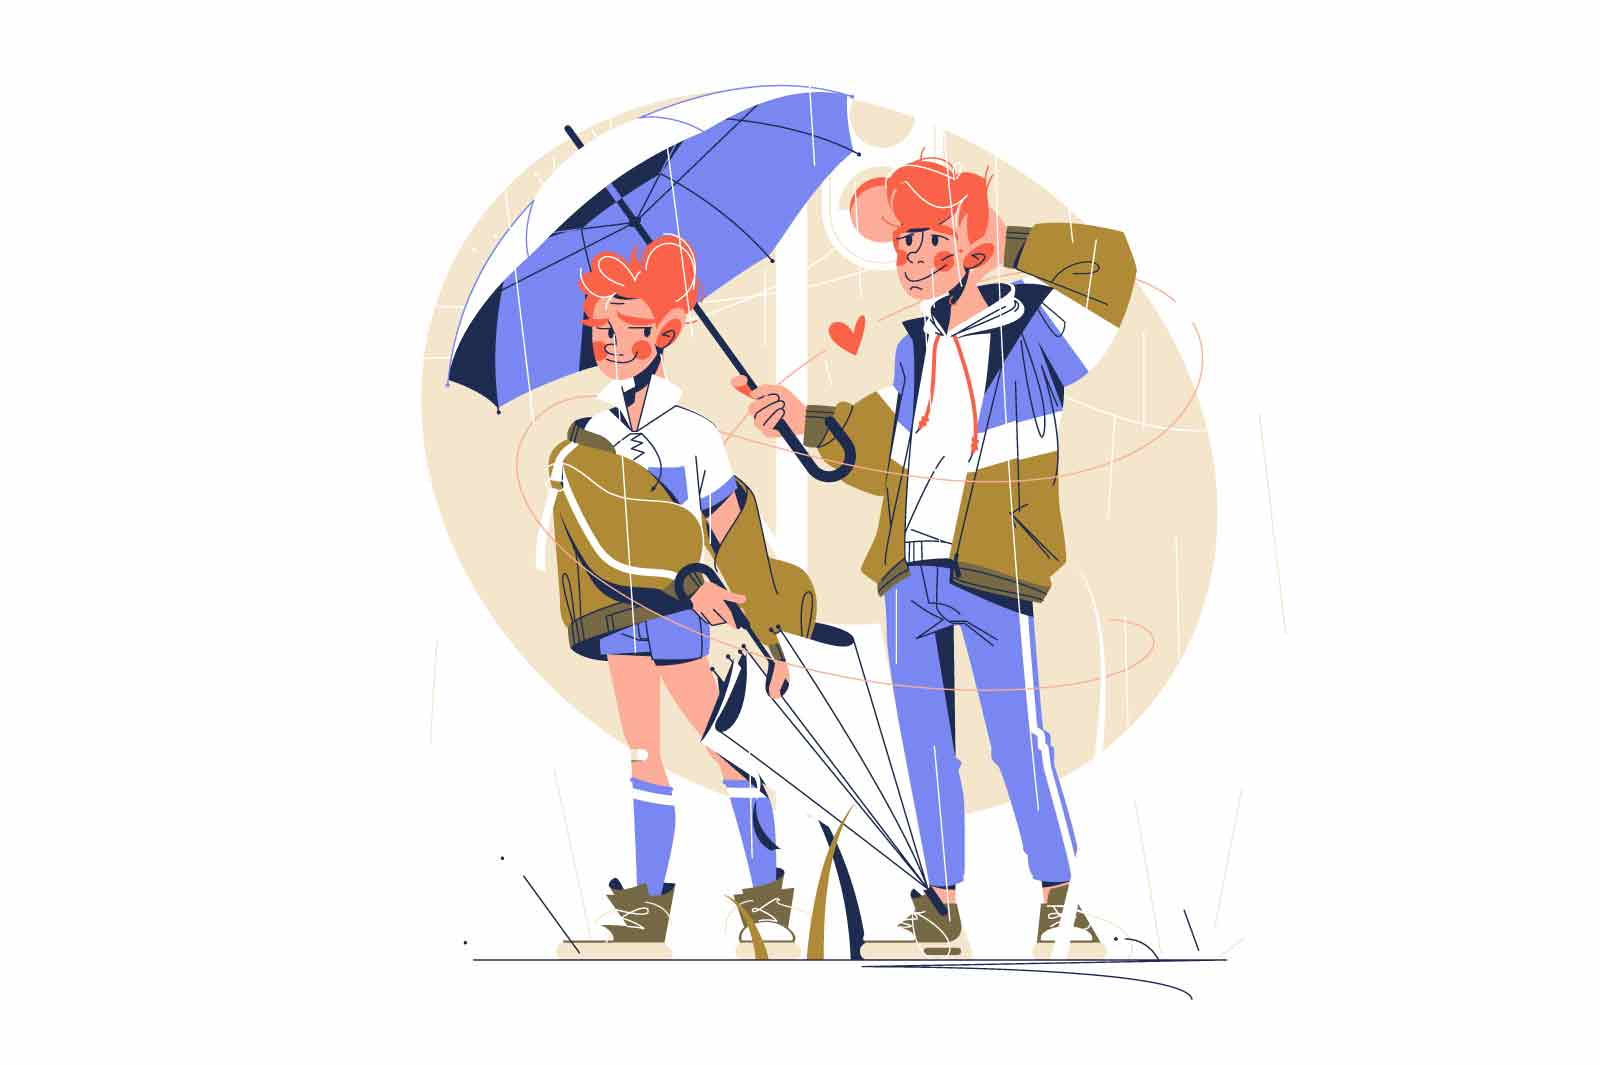 Guy and girl walking under rain vector illustration. Boyfriend holding umbrella on girlfriend flat style. Relationship goal, love, romance, happiness and leisure concept. Isolated on white background